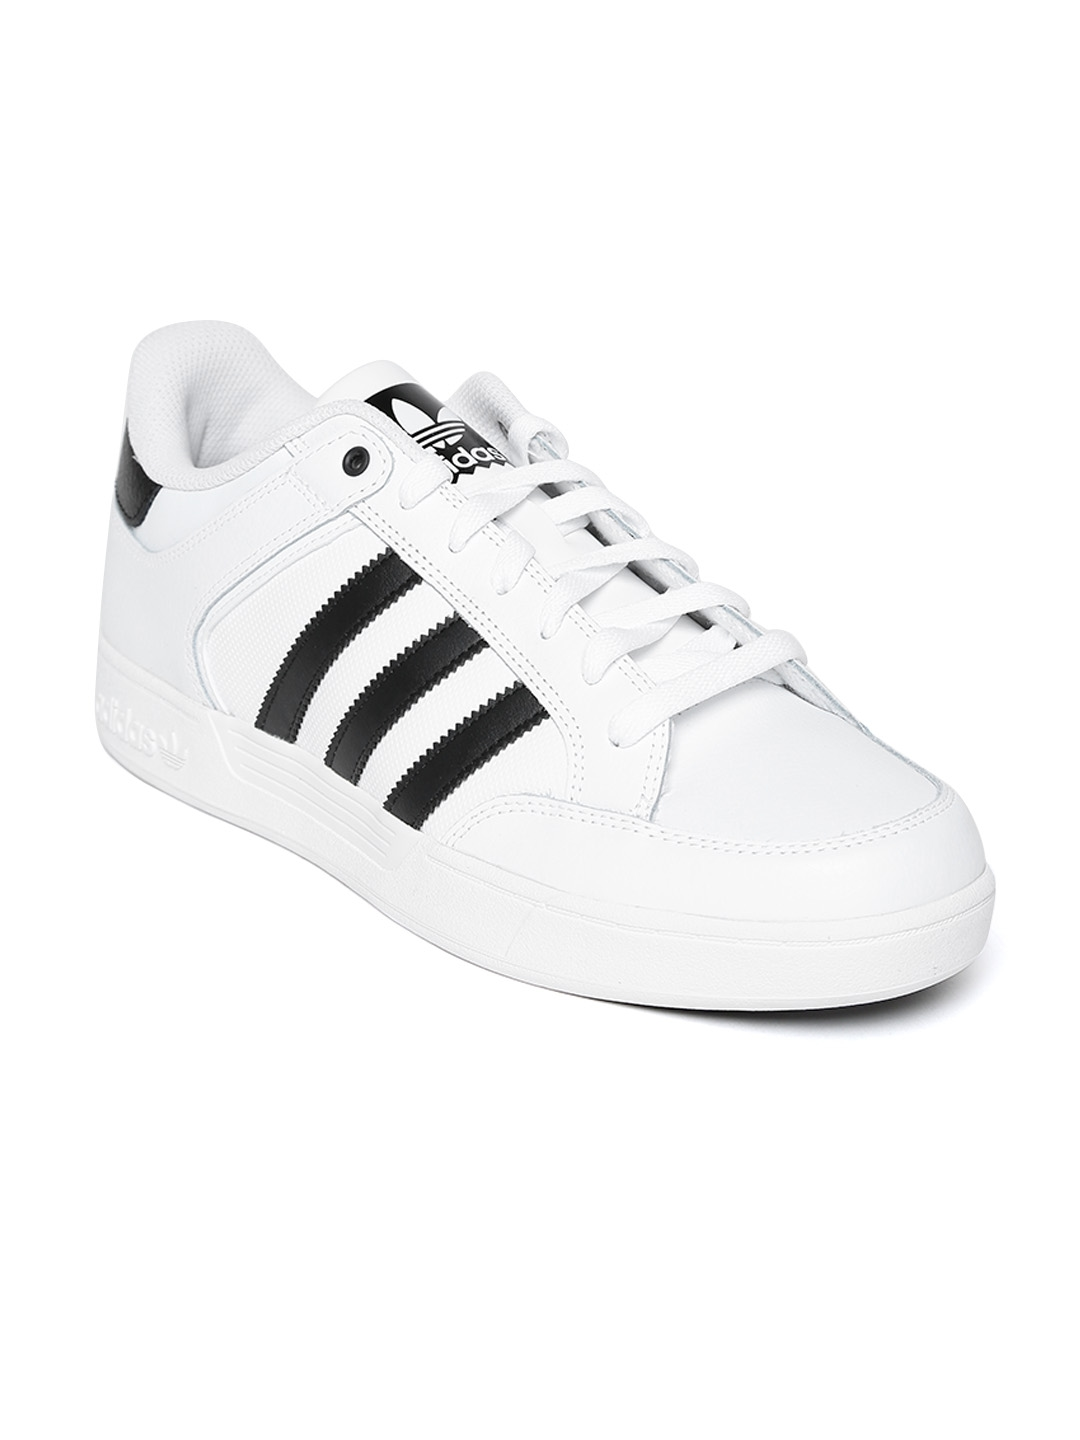 06bcd7007348e Buy ADIDAS Originals Men White Varial Low Skateboarding Shoes ...